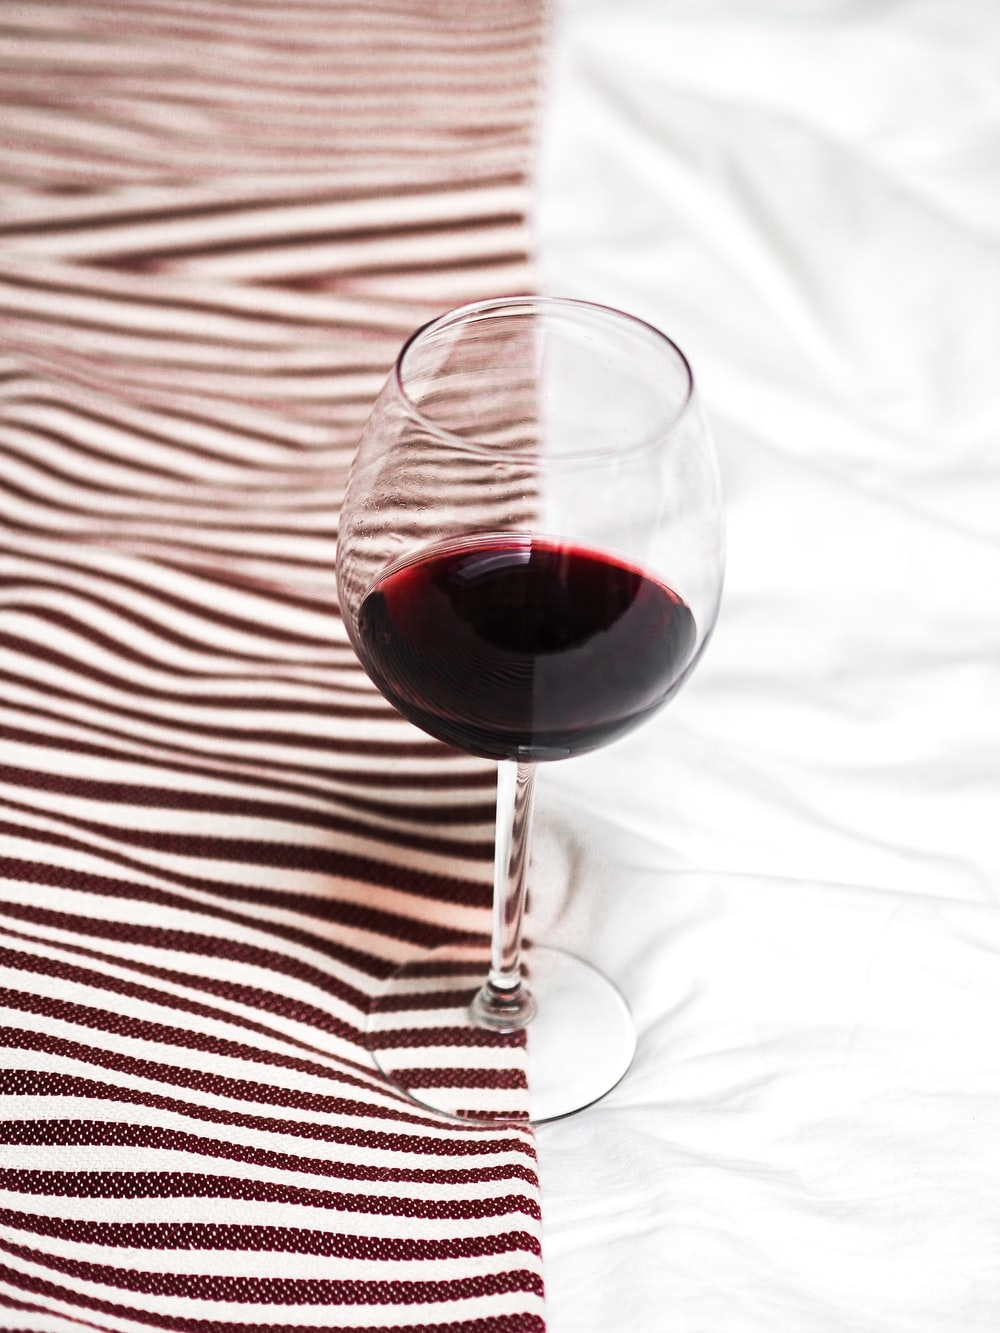 clear wine glass with red wine on white and black stripe textile